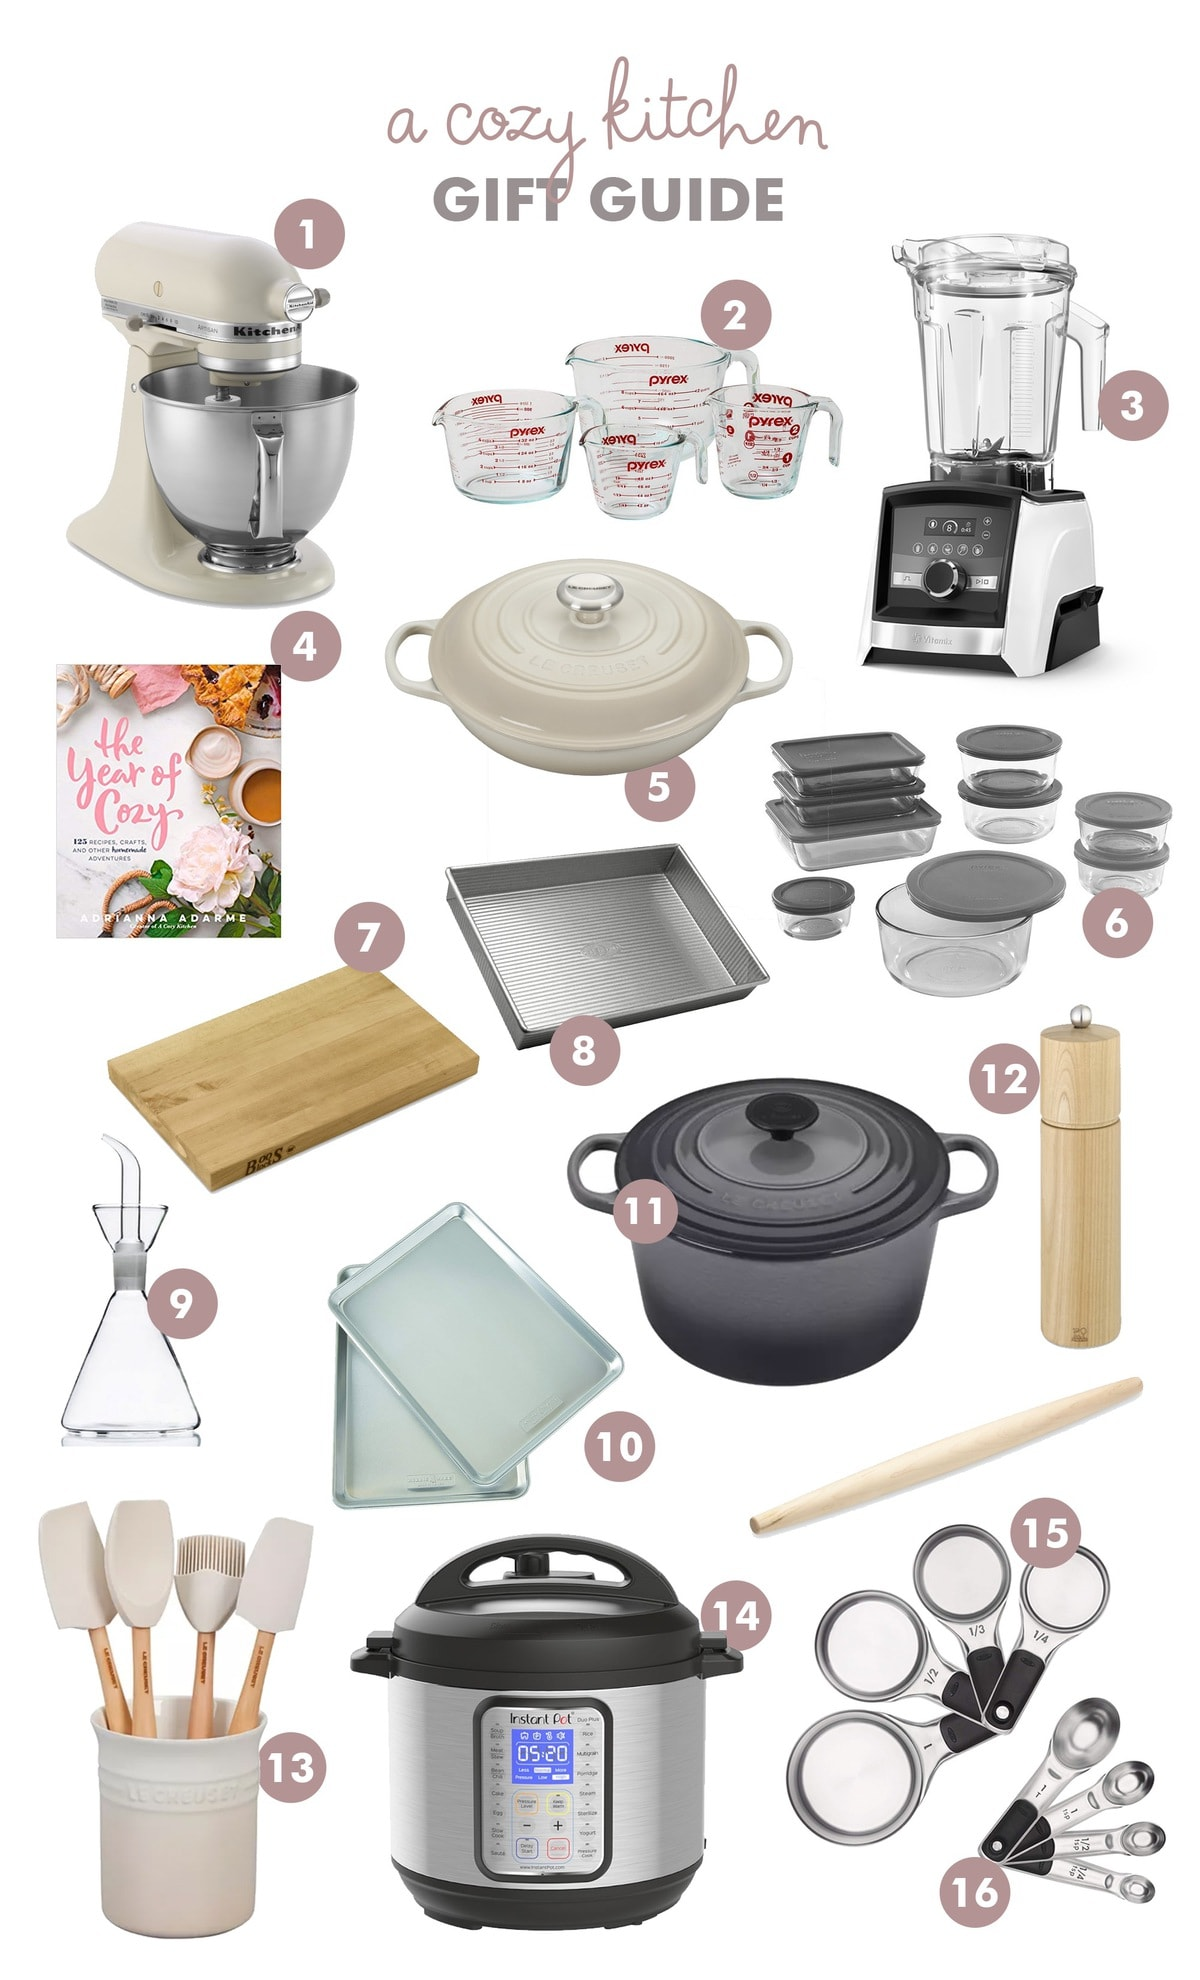 A Cozy Kitchen Gift Guide 2019